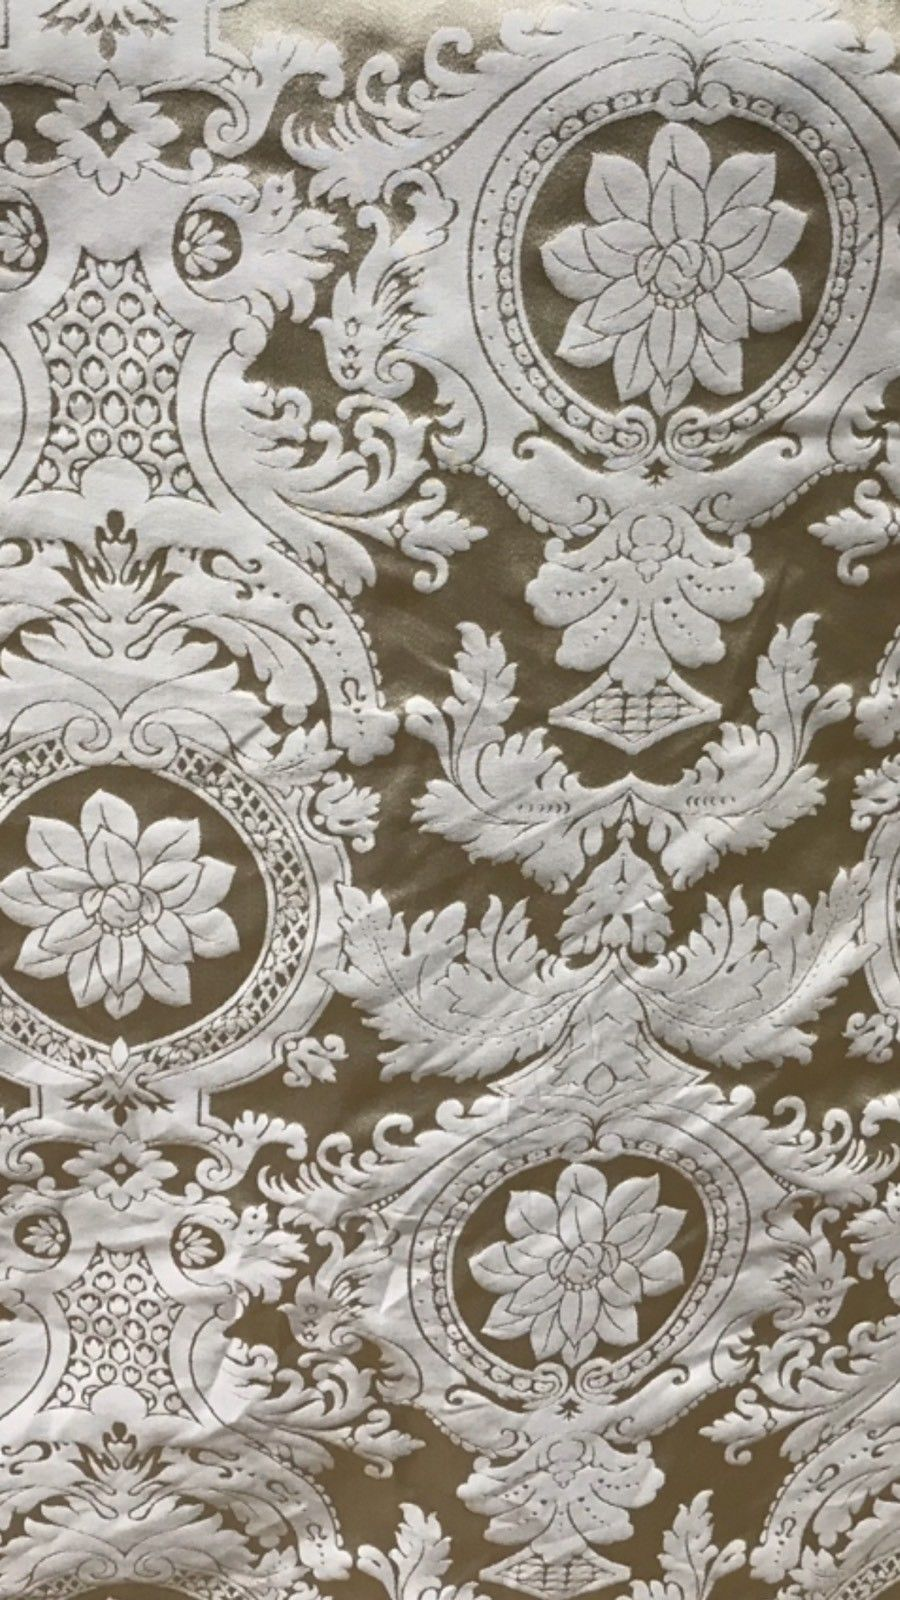 SWATCH Designer Damask Satin Fabric- Antique Gold Champagne - Upholstery Brocade - Fancy Styles Fabric Boutique